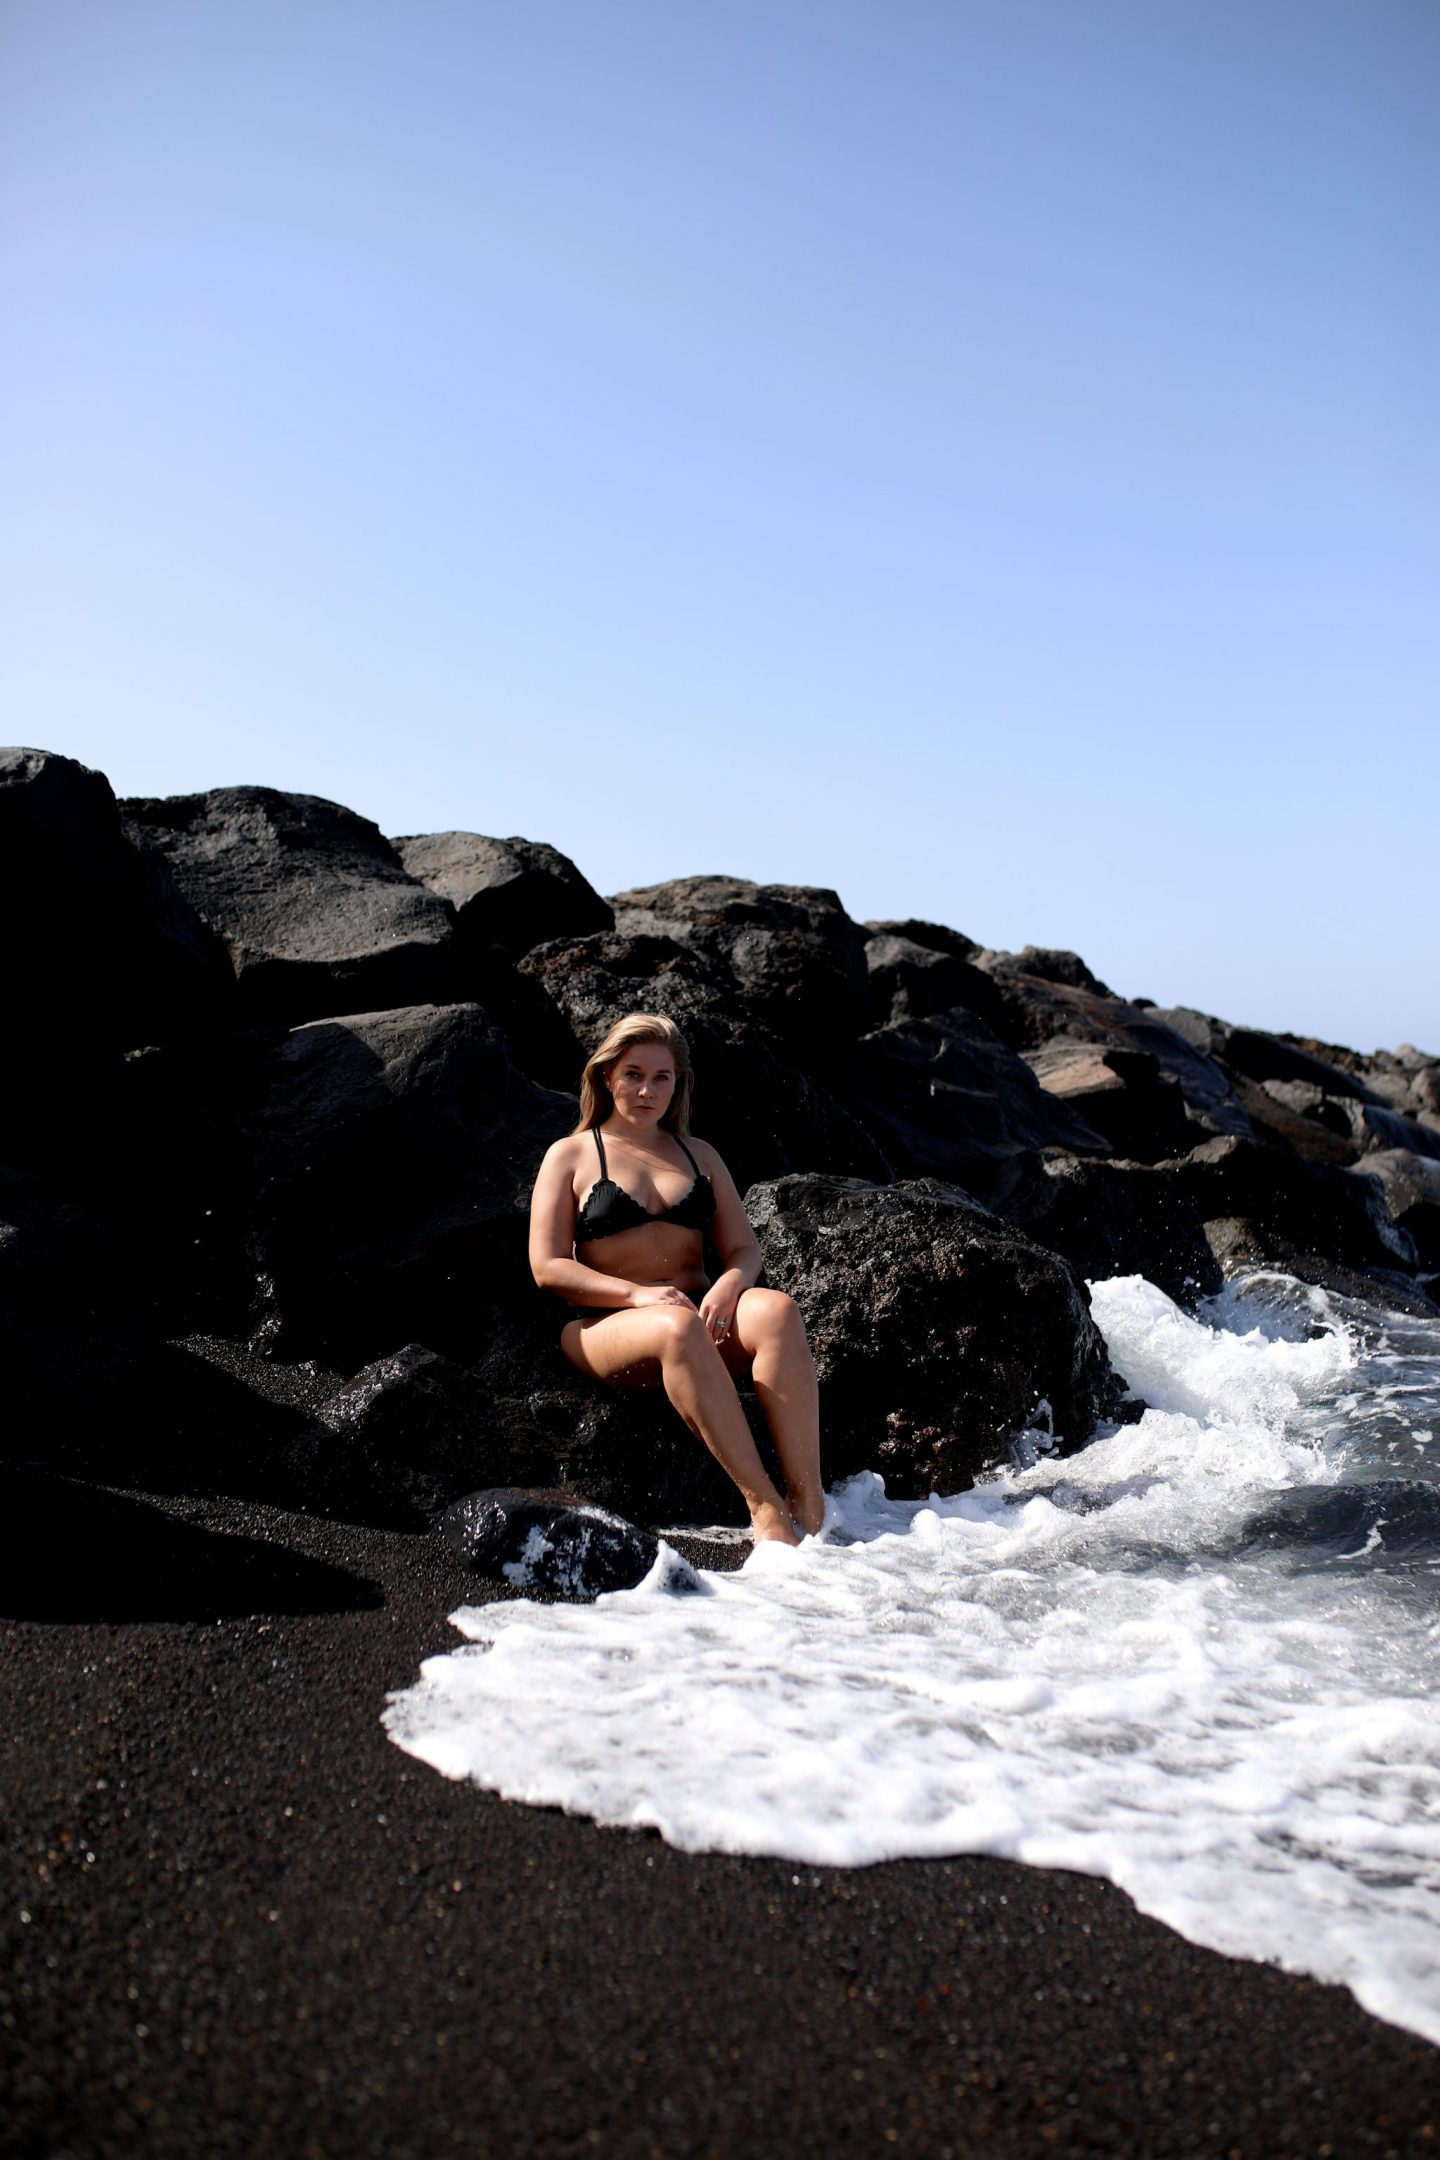 Black Sand Beach, Tenerife, Canary Islands, Katie Heath, KALANCHOE